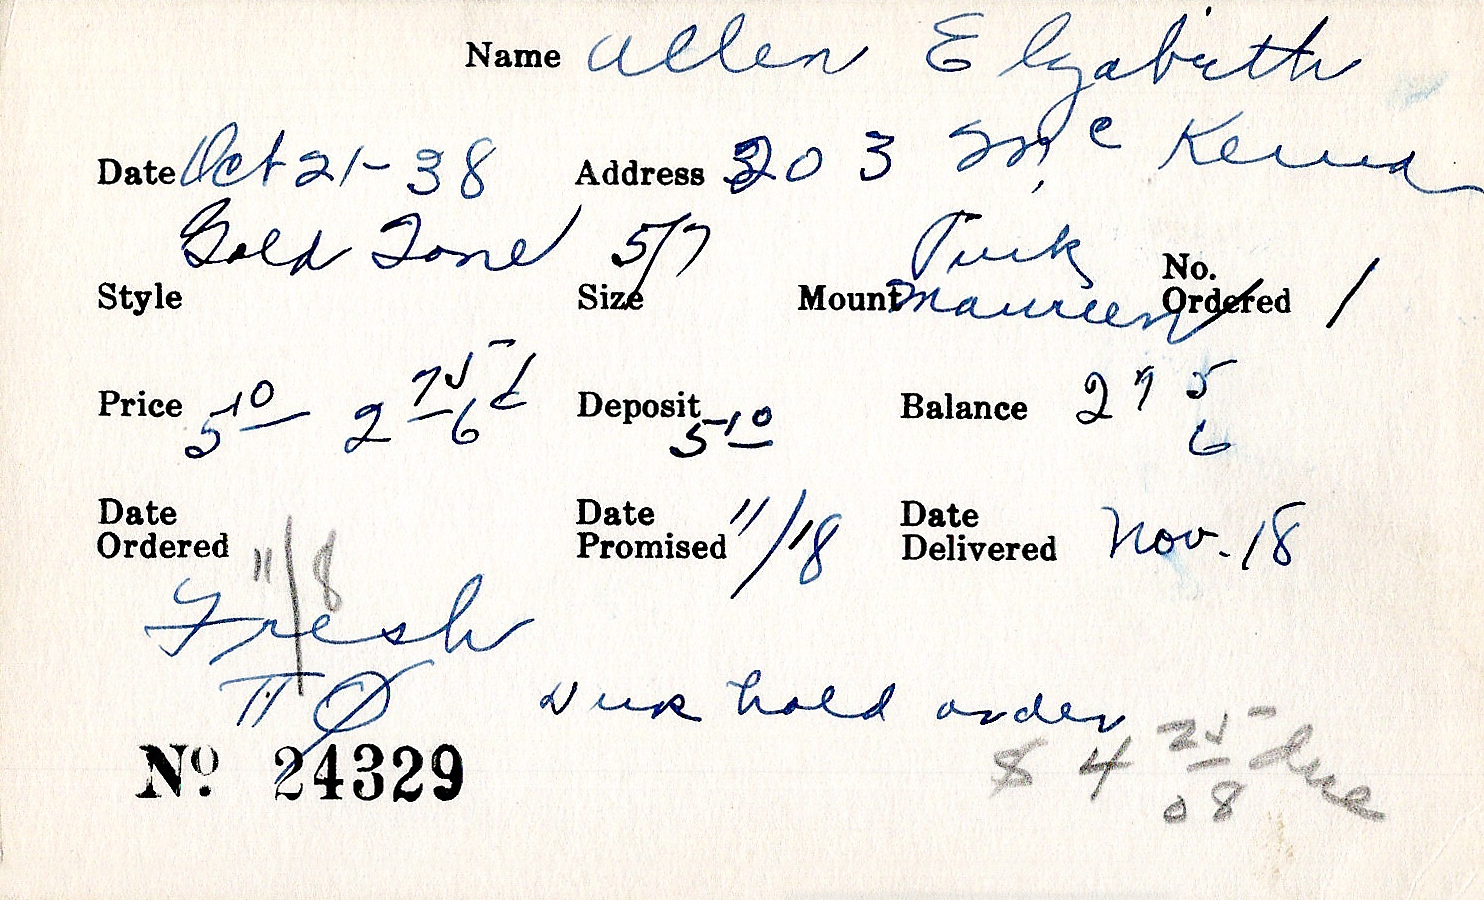 Index card for Elizabeth Allen